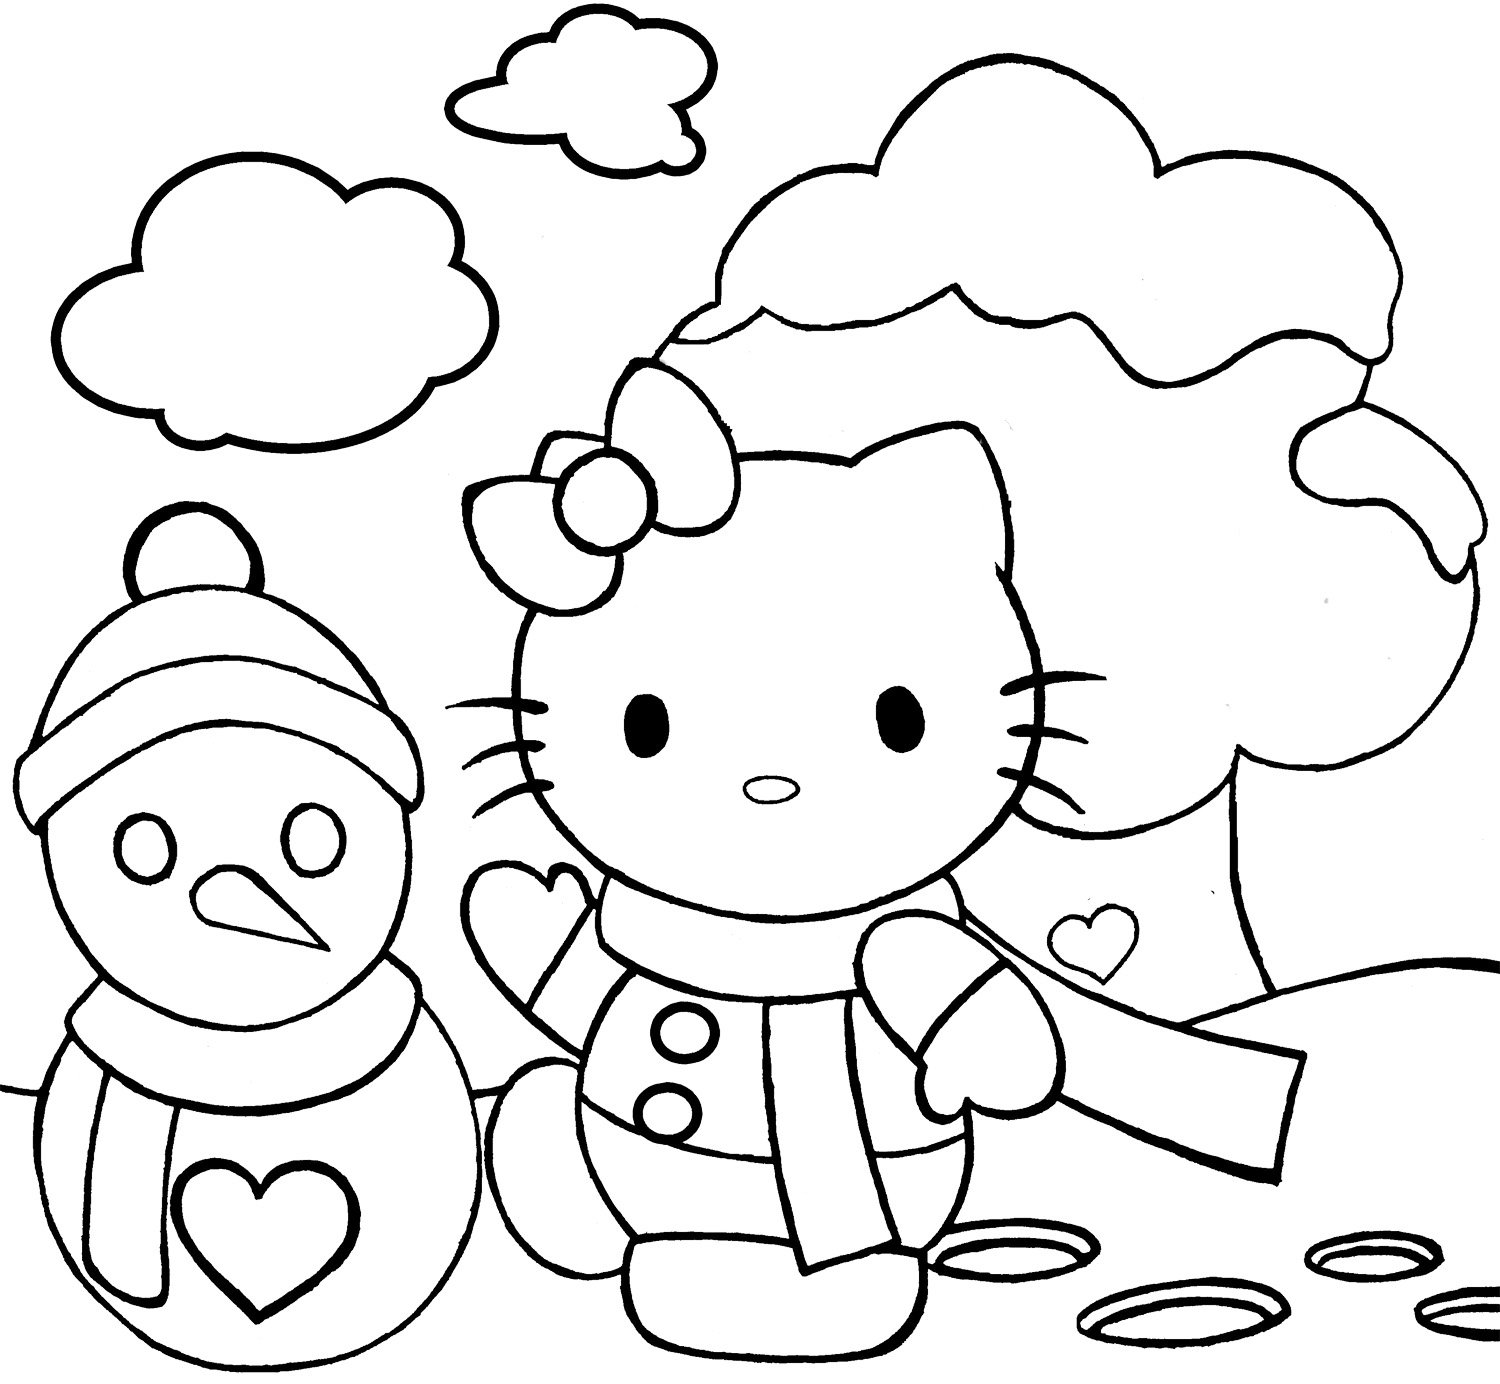 10 idea hello kitty christmas coloring page coloring page for kids